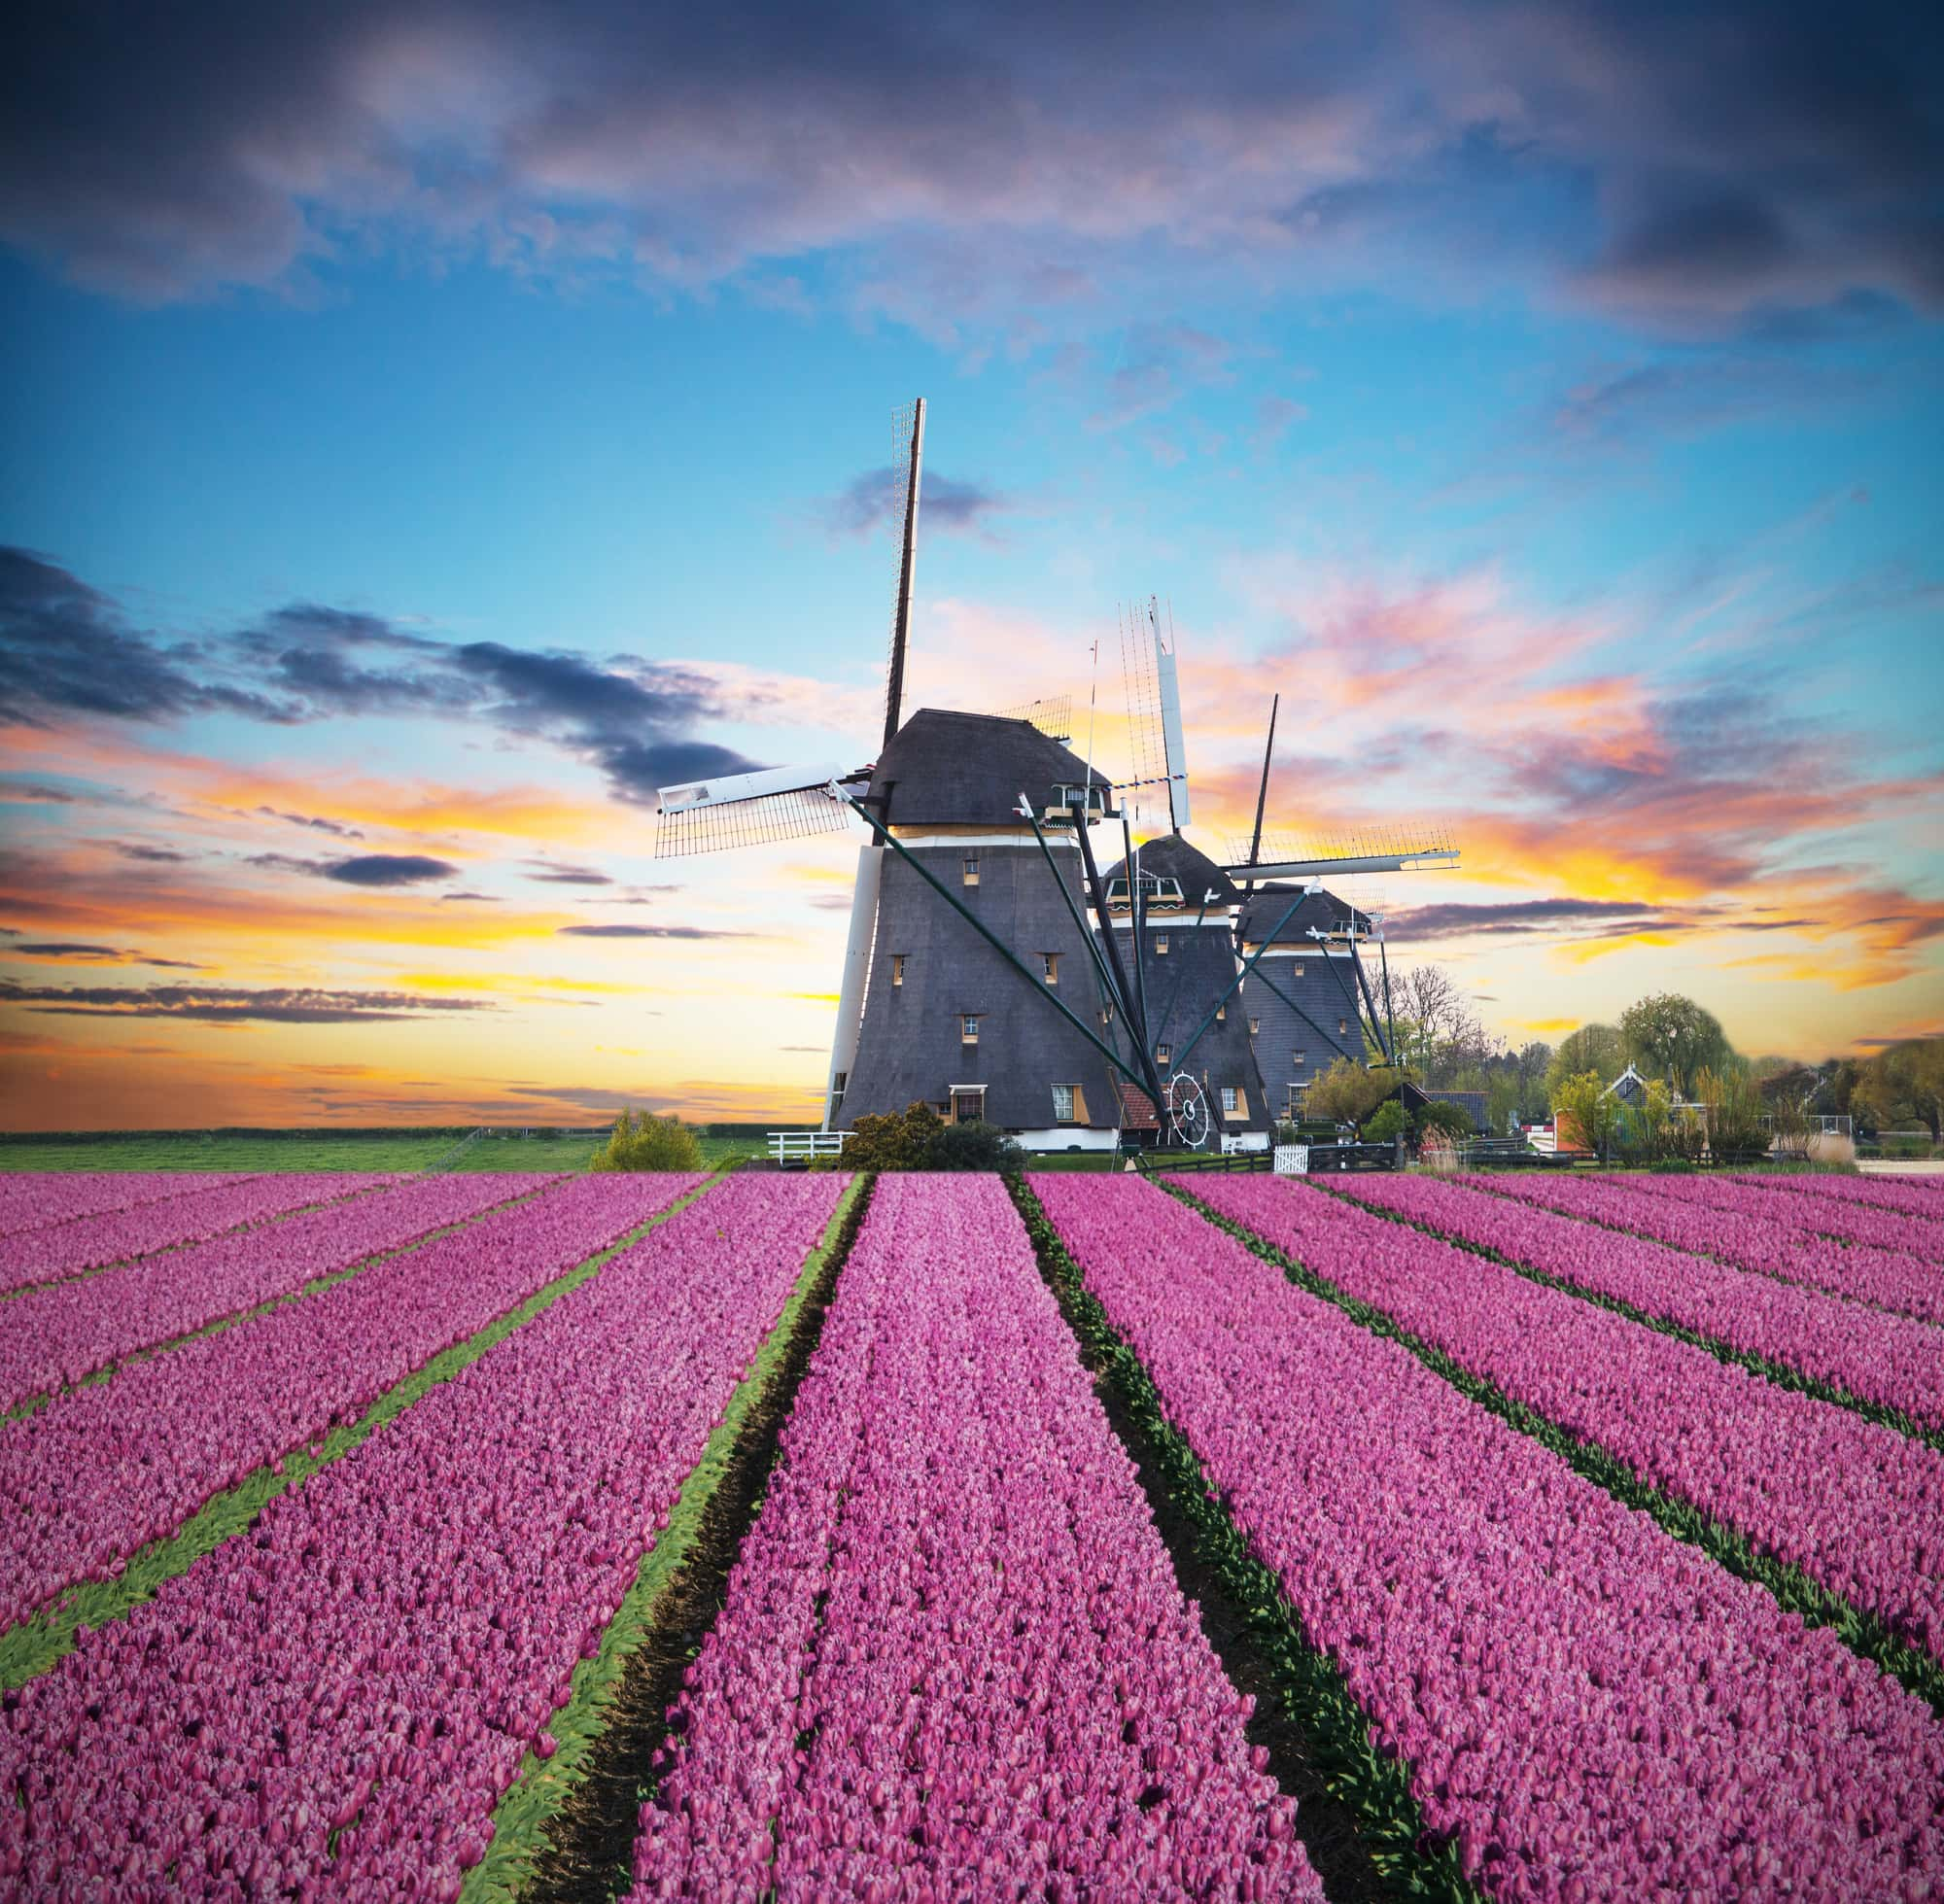 Vibrant tulips field with Dutch windmill, Netherlands. Beautiful cloudy sky